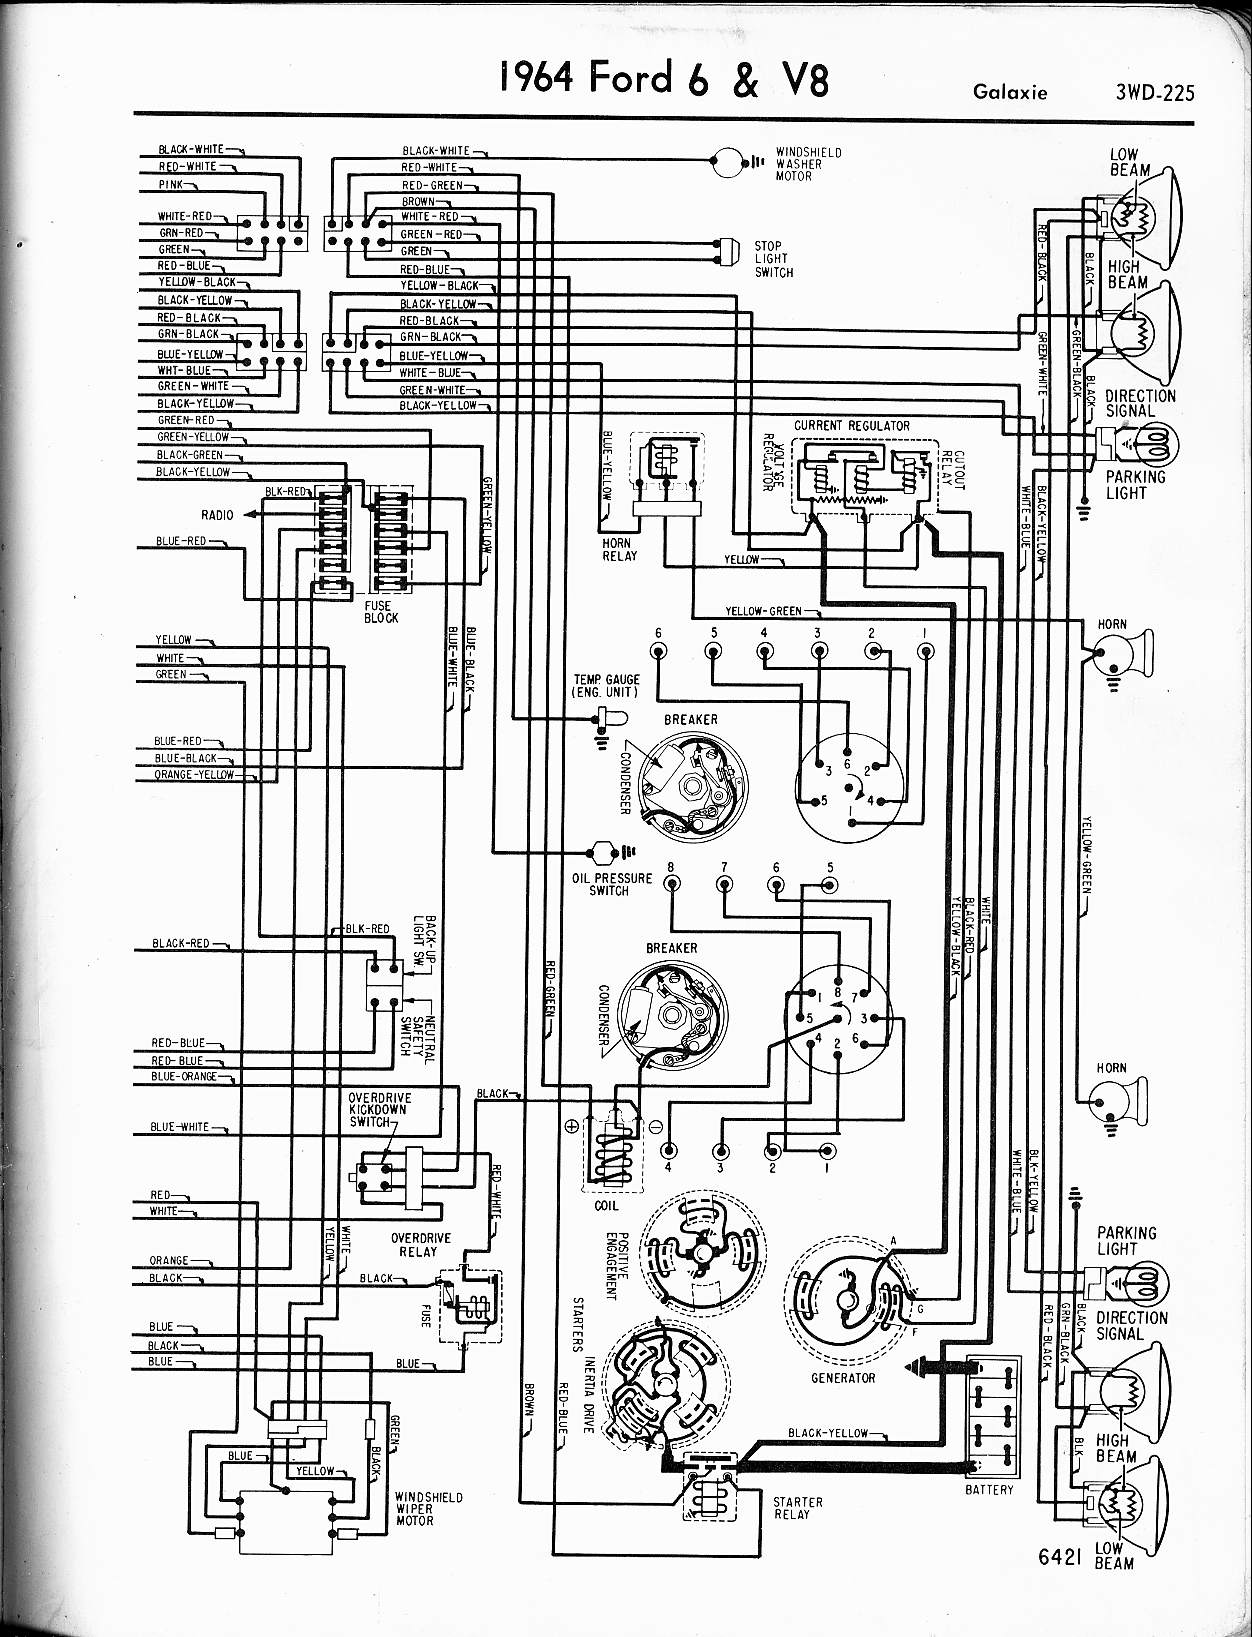 57 65 Ford Wiring Diagrams Car Stereo Harness 2000 Econoline 1964 6 V8 Galaxie Right